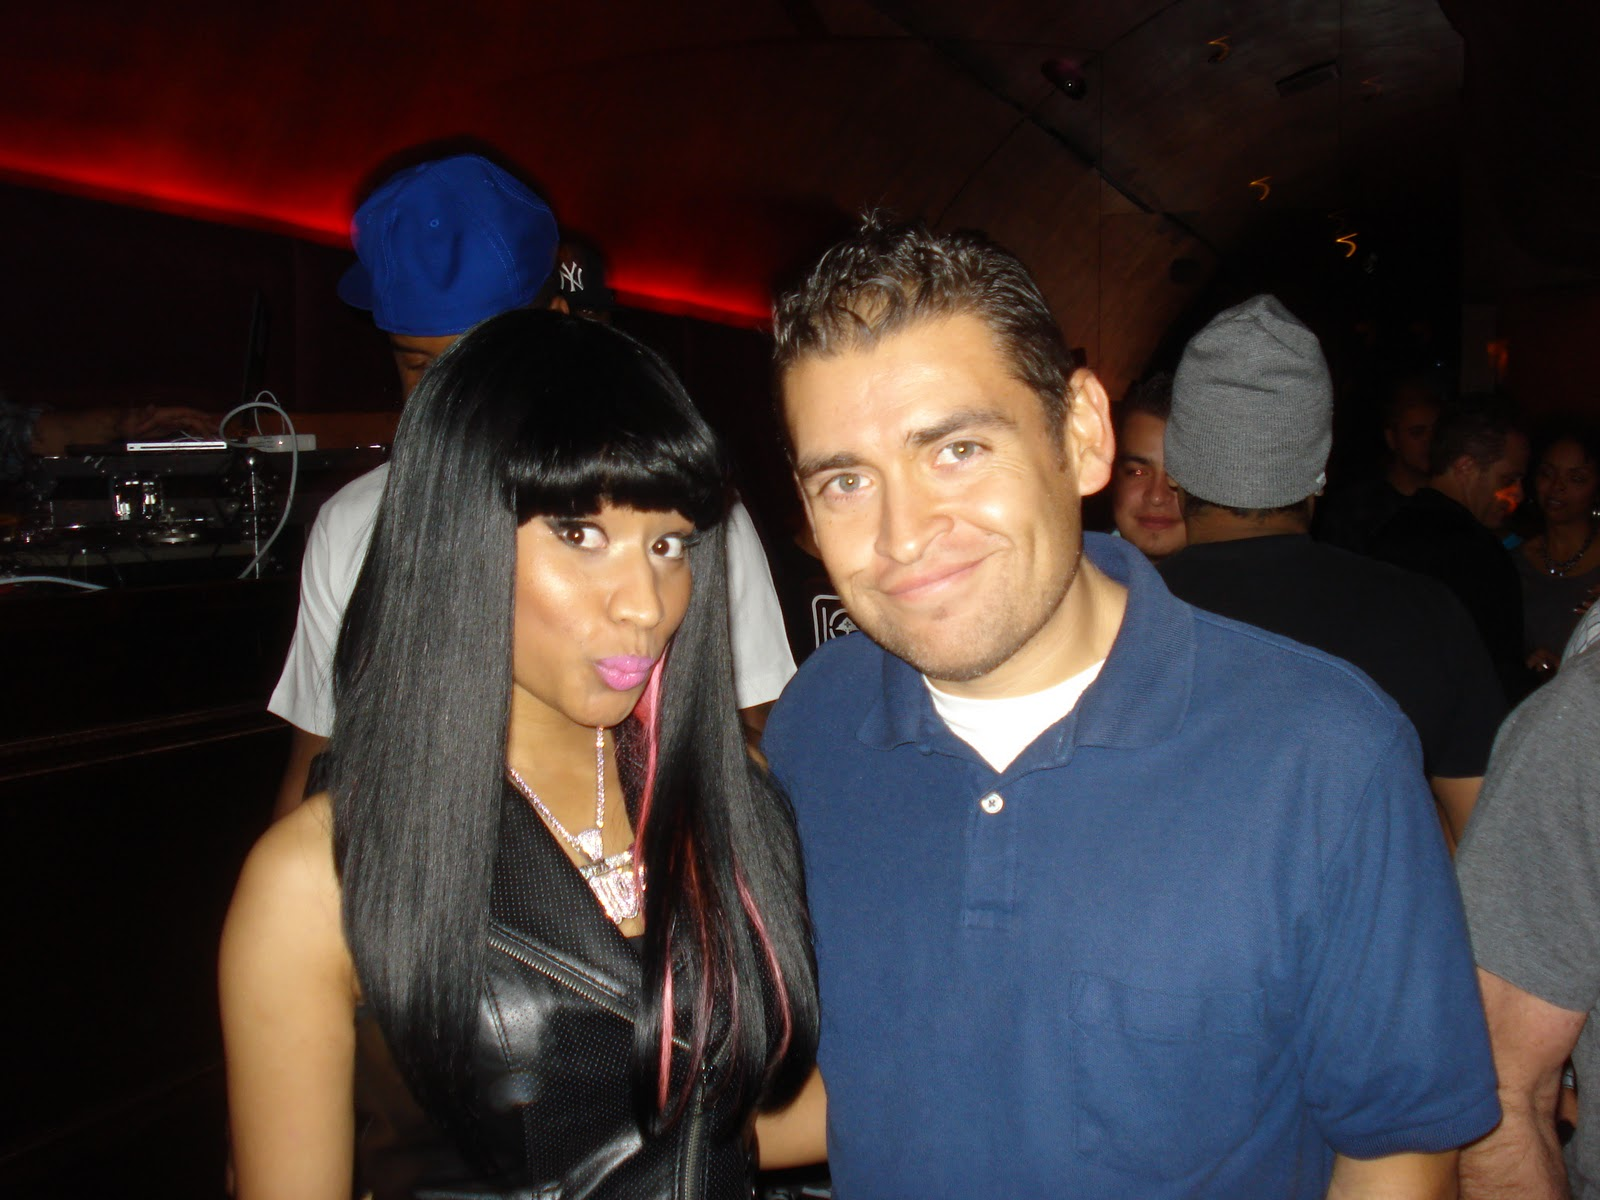 Randomly ronnie jr nicki minaj event hyde lounge recently i joined my close friend vanyaonline as she conducted a meet greet w 2011 breakout star nicki minaj the promotional event was held the m4hsunfo